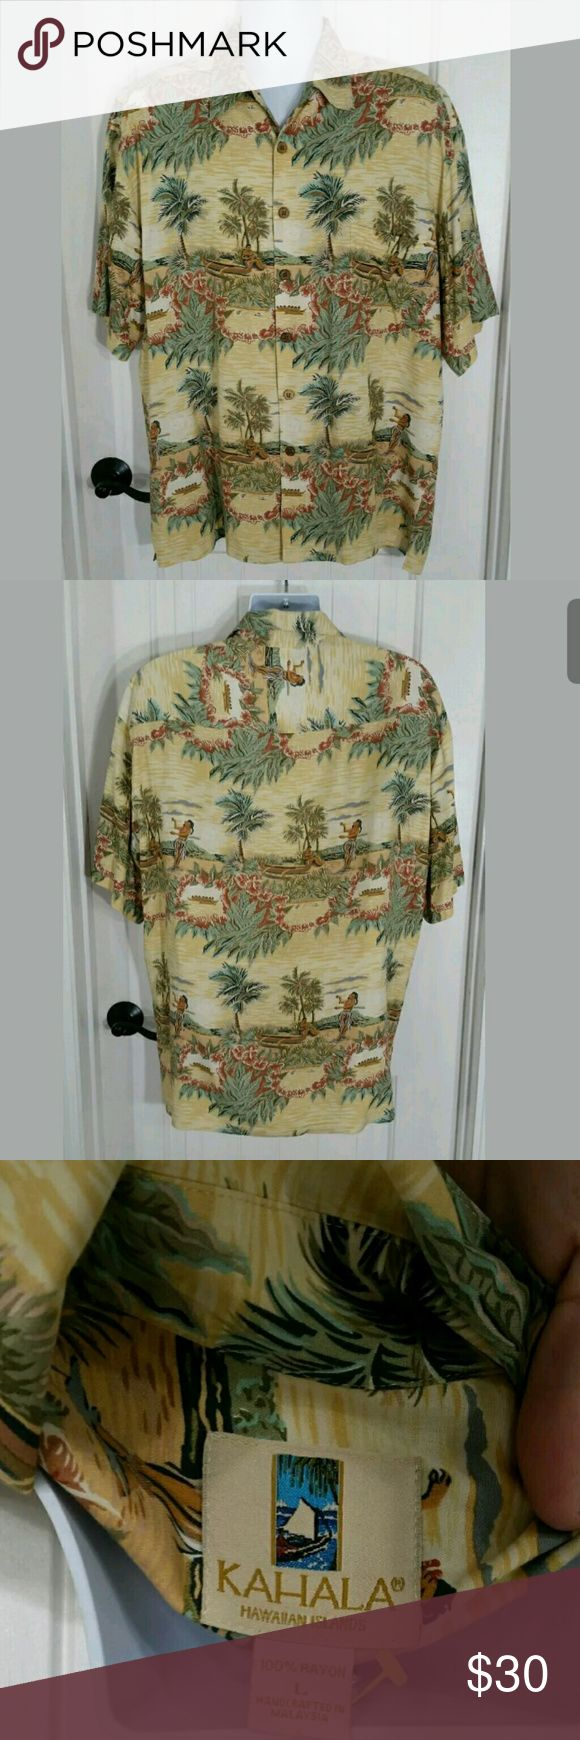 """Kahala Mens Rayon Button Up Hawaiian Shirt LARGE Kahala Mens Hawaiian Shirt Short Sleeve Button Up Rayon Casual Camp Lounge. Excellent preowned like new condition. Comes with extra button  Type: Shirt Style: Button Front Hawaiian with front pocket and extra button Brand: Kahala Size: Large ( Runs a little bit larger ) Material: 100% Rayon Color: Yellow Multicolor Measurements: Sleeve - 11"""" / Chest - 54""""  / Length - 33""""  Condition: Excellent preowned condition - No holes, no stains, no…"""